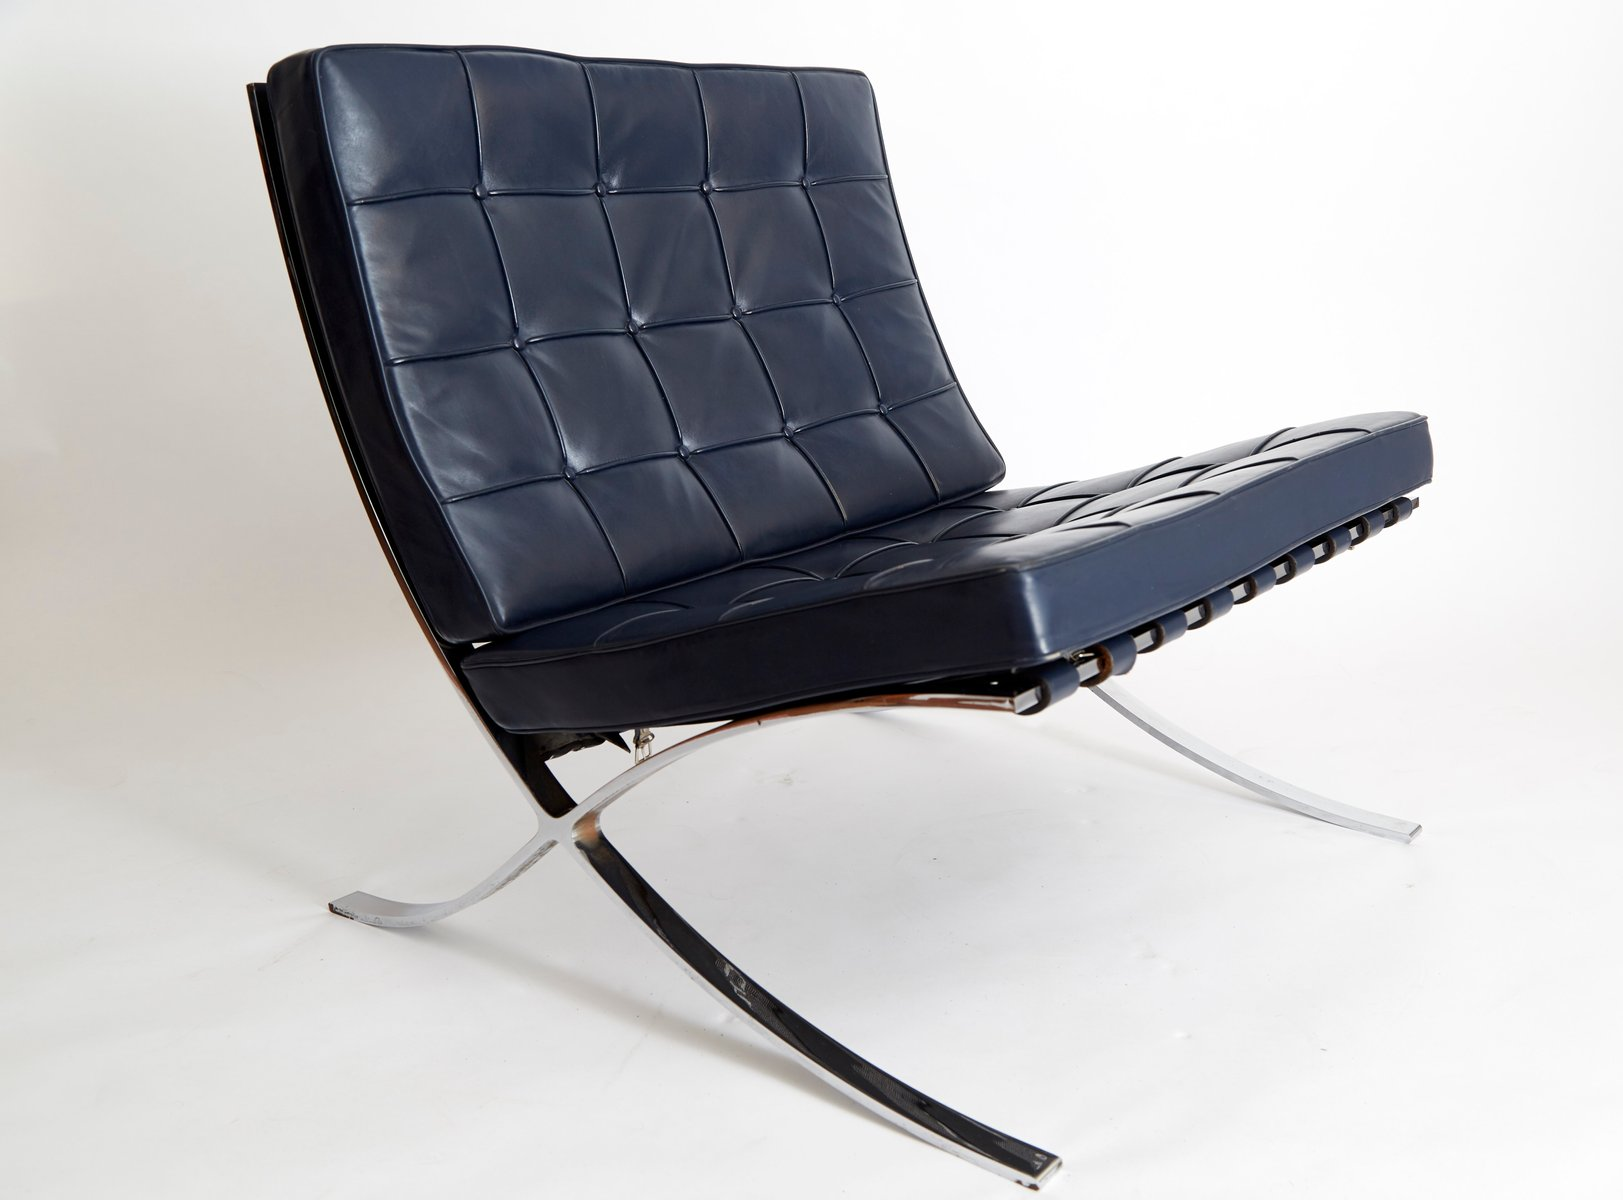 vintage mr90 barcelona chair by ludwig mies van der rohe for knoll international for sale at pamono. Black Bedroom Furniture Sets. Home Design Ideas